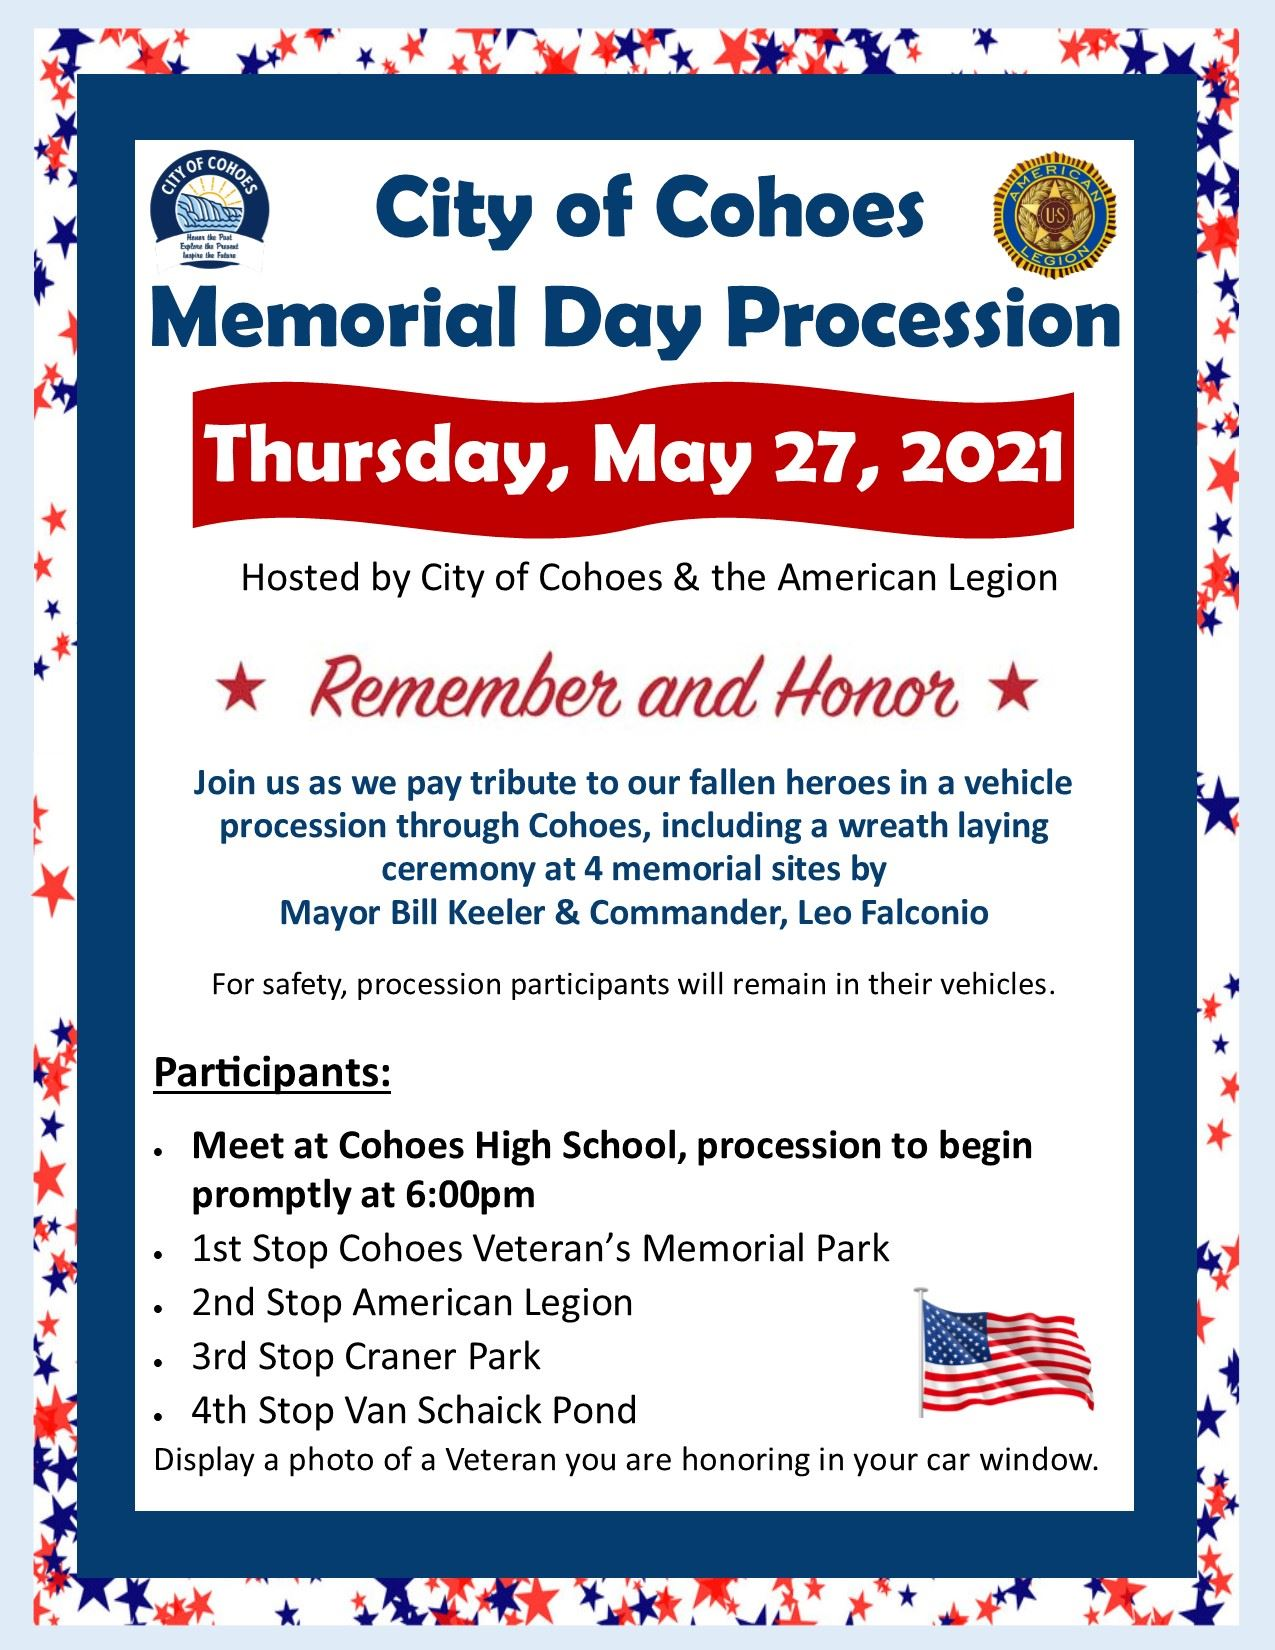 Memorial Day procession flyer 2021